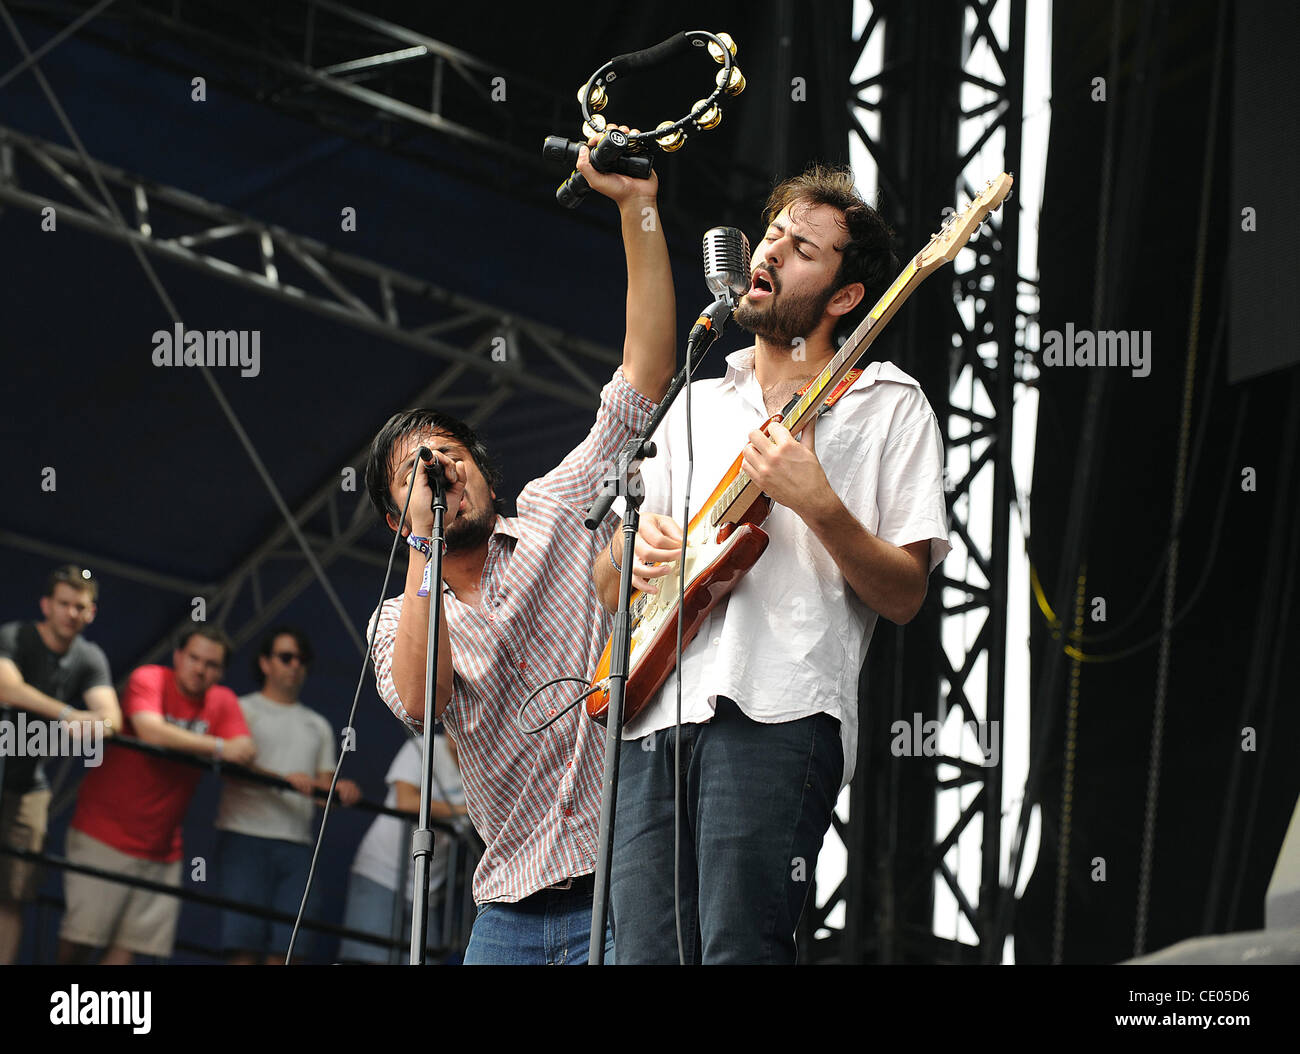 Aug 5, 2011 - Chicago, Illinois; USA - Singer SAMEER GADHIA and Guitarist ERIC CANNATA of the band Young The Giant - Stock Image